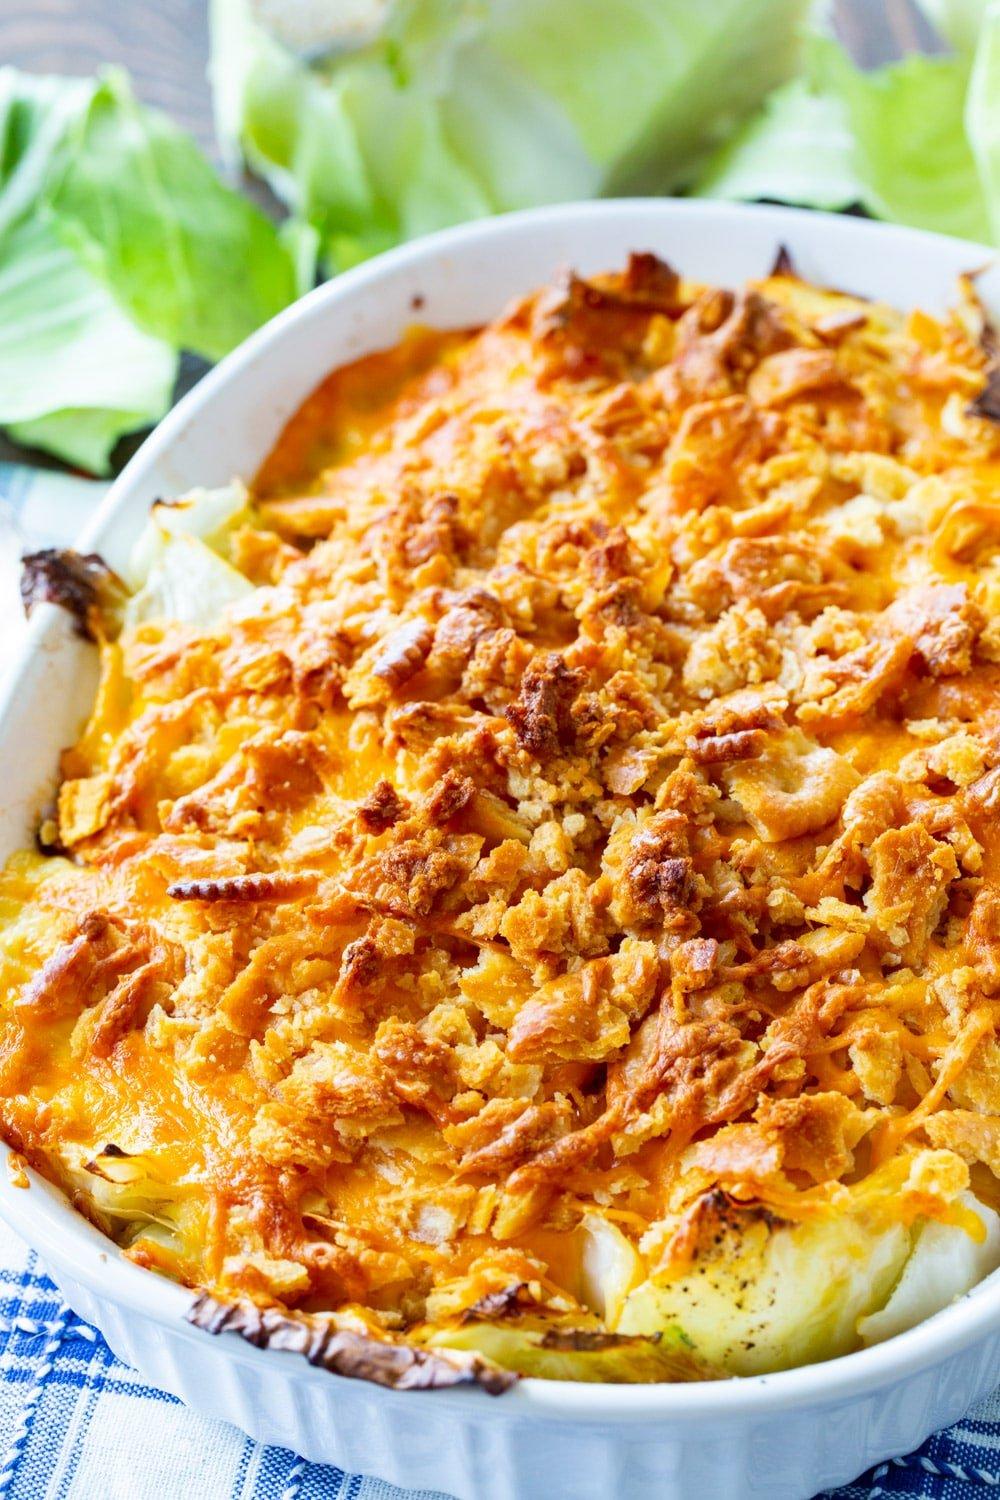 Cabbage Casserole in a baking dish.